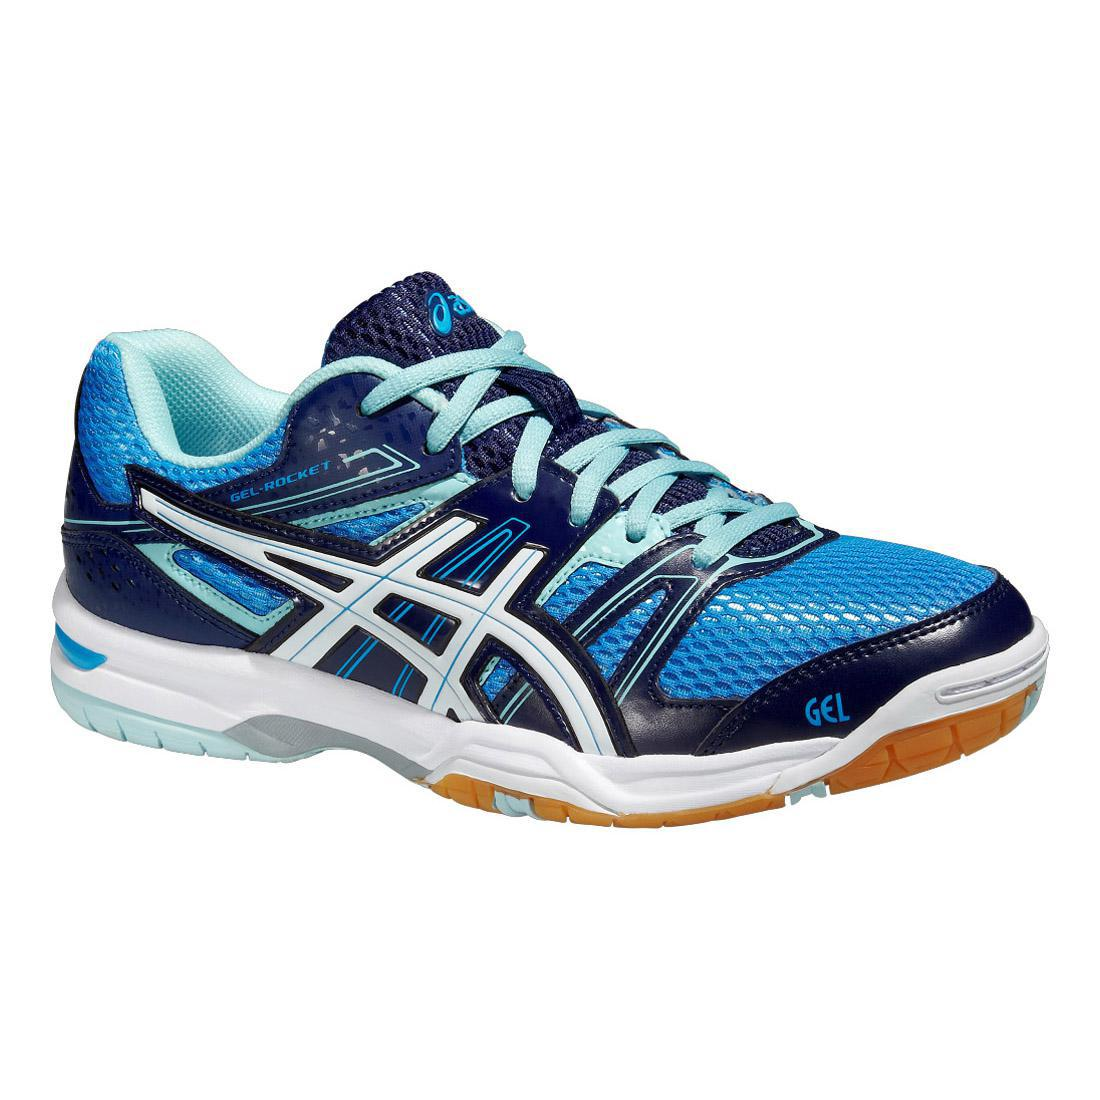 a39d42e550c1 Asics Womens GEL-Rocket 7 Indoor Court Shoes - Powder Blue - Tennisnuts.com